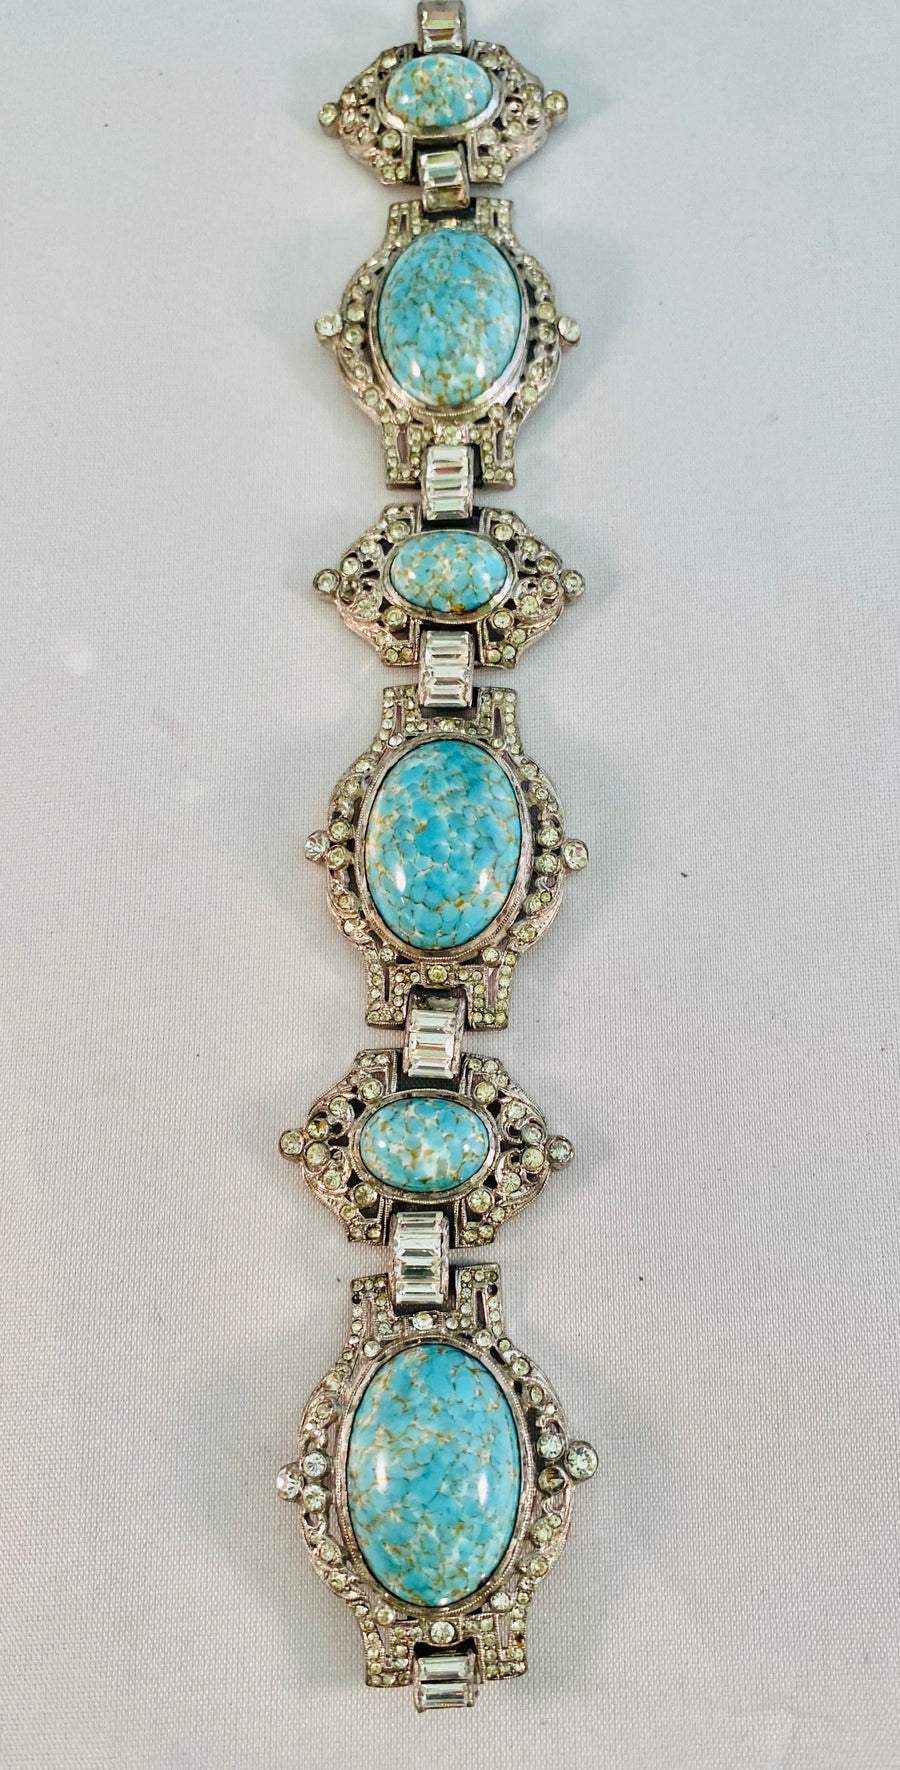 Fifties Bracelet